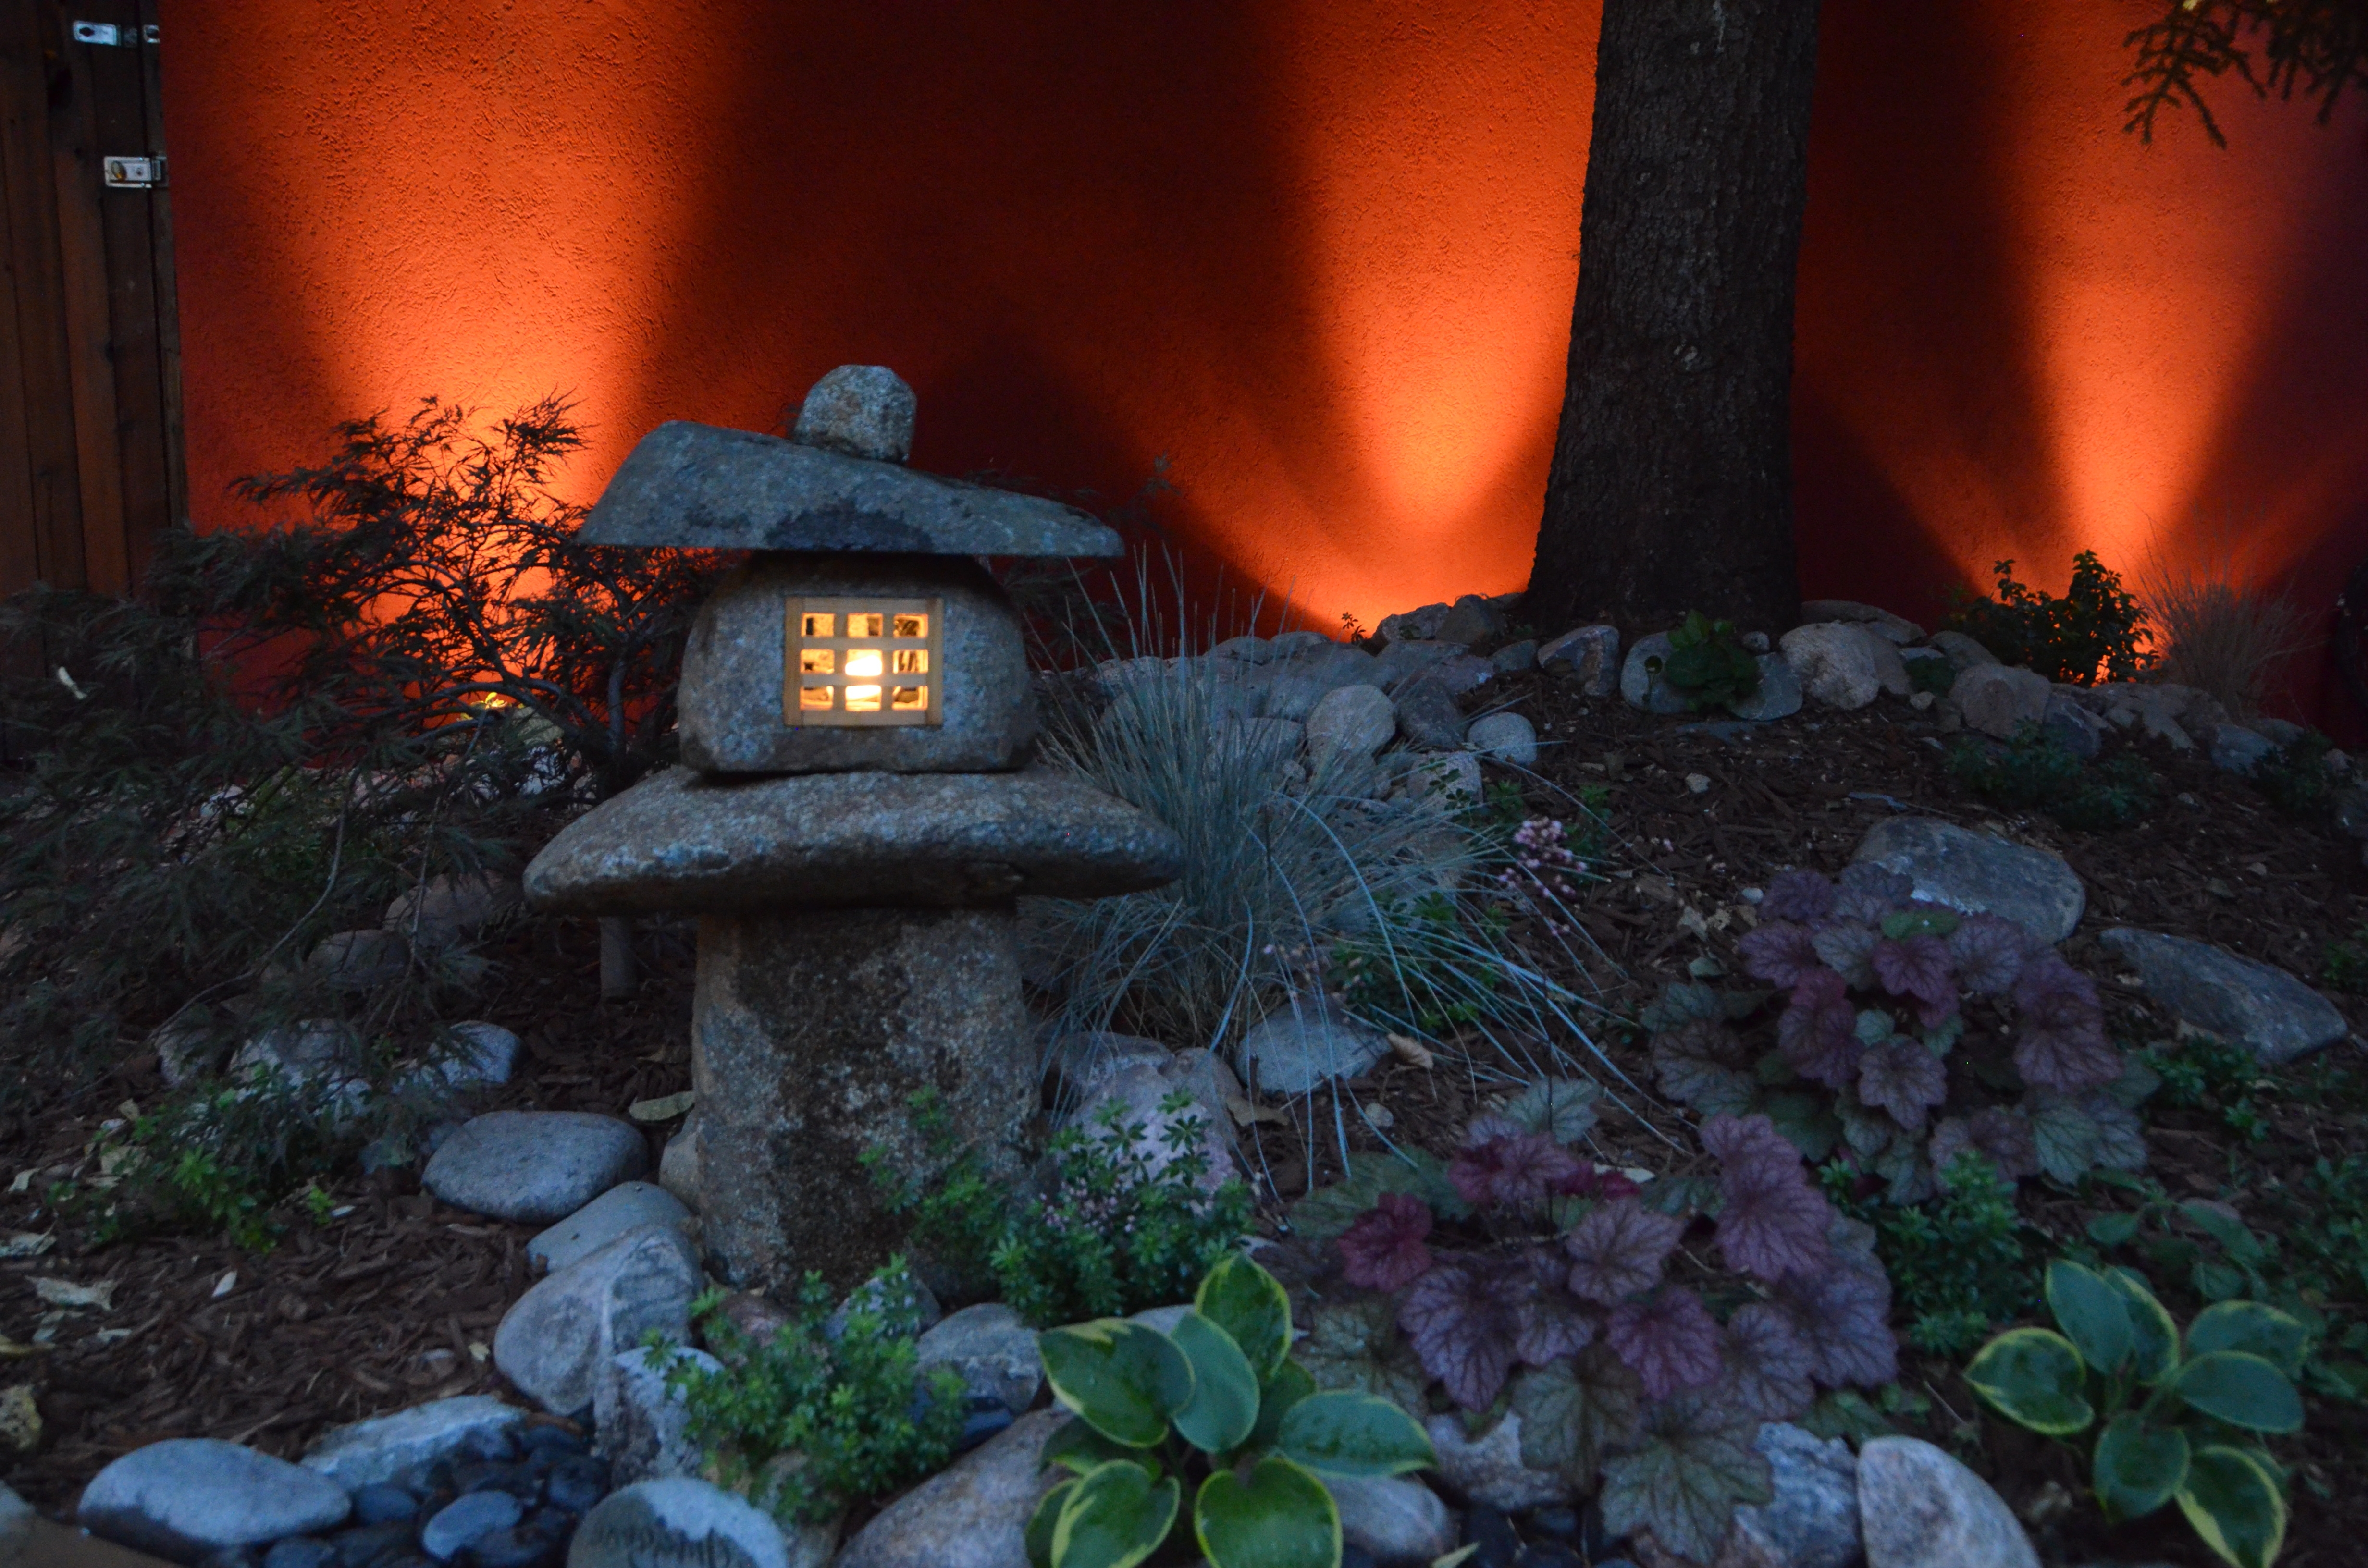 Famous Japanese Lantern With Outdoor Lighting – Landscaping In Denver Within Outdoor Japanese Lanterns (View 5 of 20)